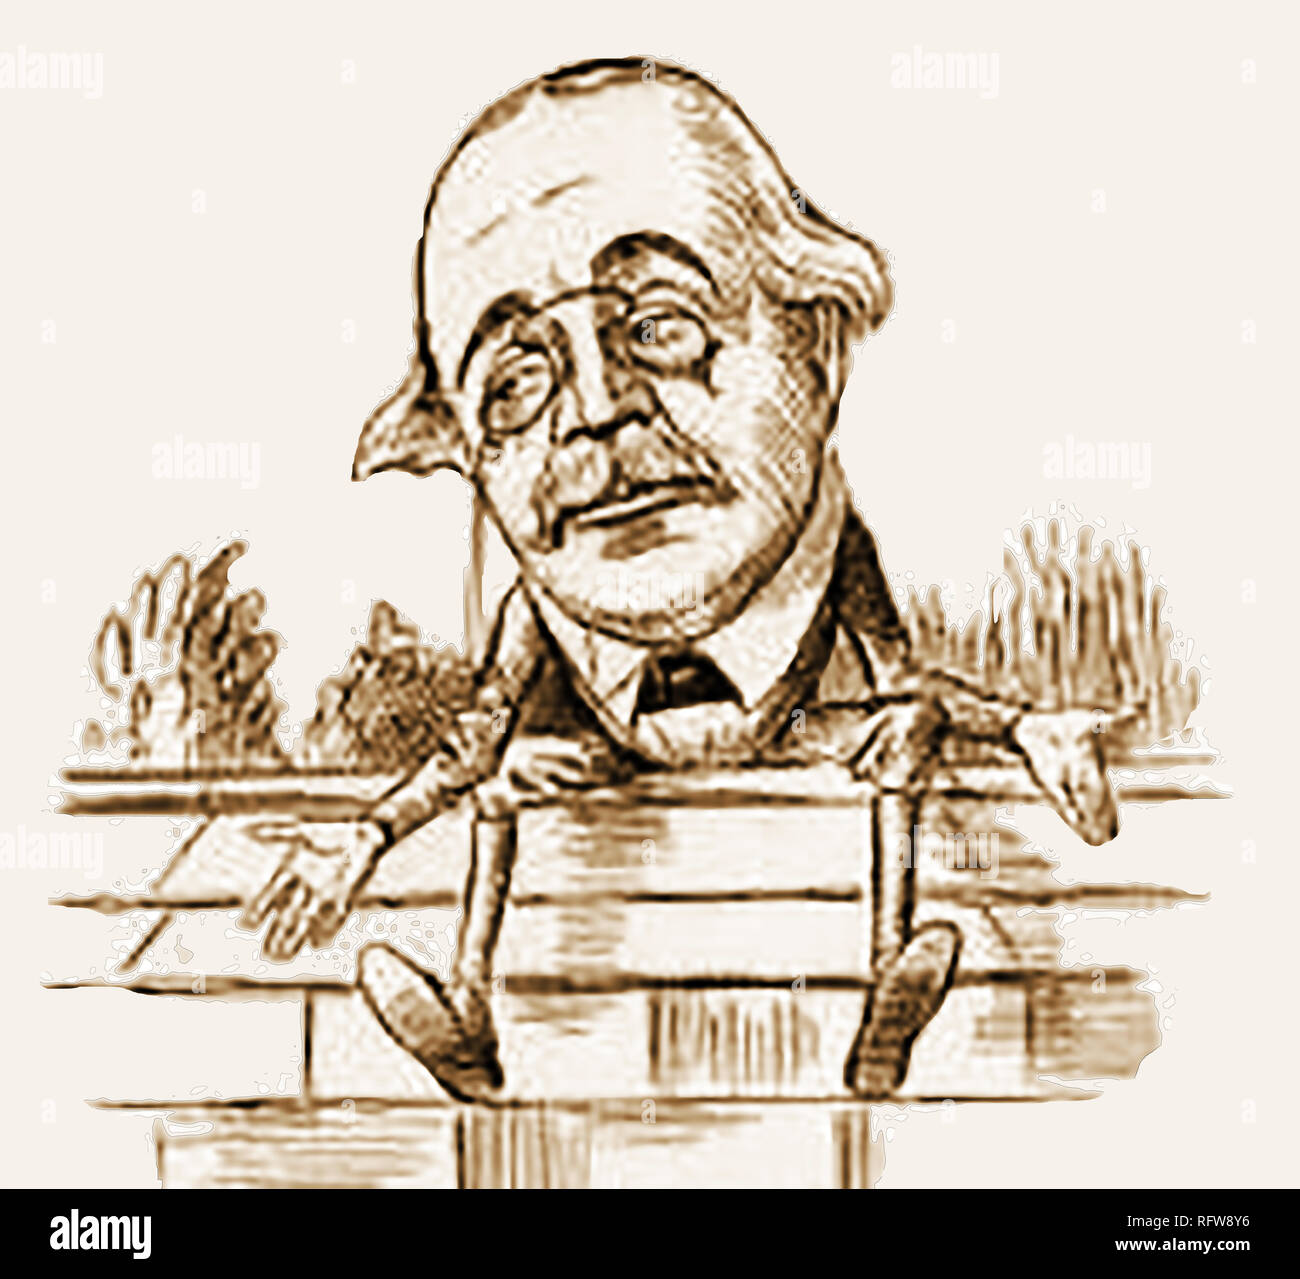 1898 British political cartoon /  caricature of Politician Arthur Balfour as Humpty Dumpty, sitting on the fence regarding the provisions of old age pensions. Arthur James Balfour, 1st Earl of Balfour, KG, OM, served as Prime Minister between 1902 and 1905. Also held positions of Lord President of the Council, Foreign Secretary, First Lord of the Admiralty and Leader of the Opposition, First Lord of the Treasury and Lord Privy Seal. Stock Photo